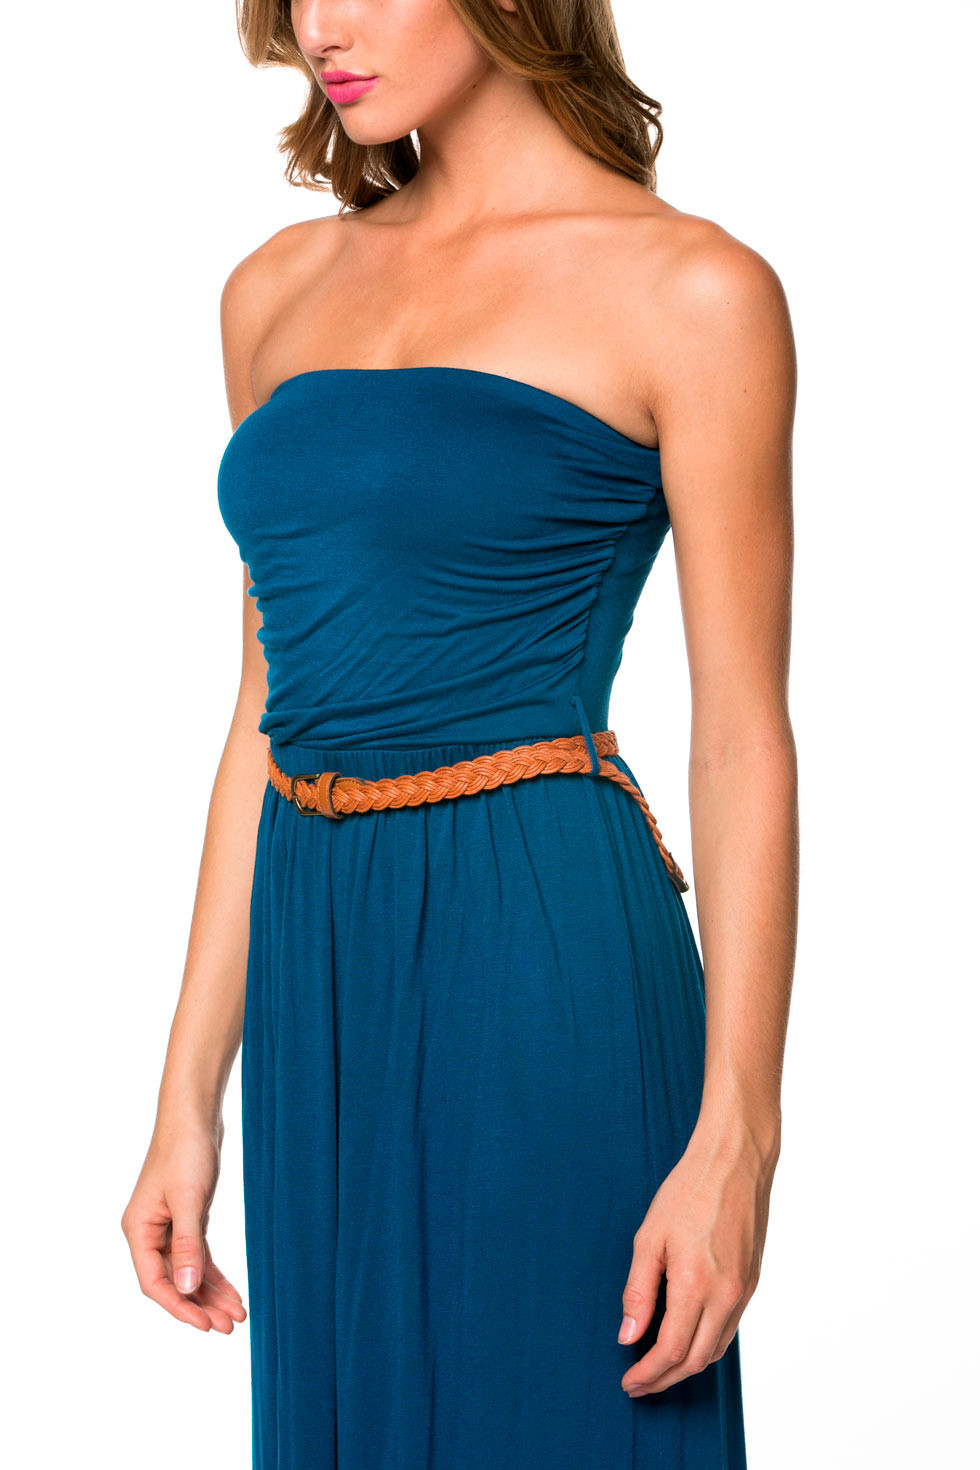 Tube Top Dresses For Summers Patterns Hub